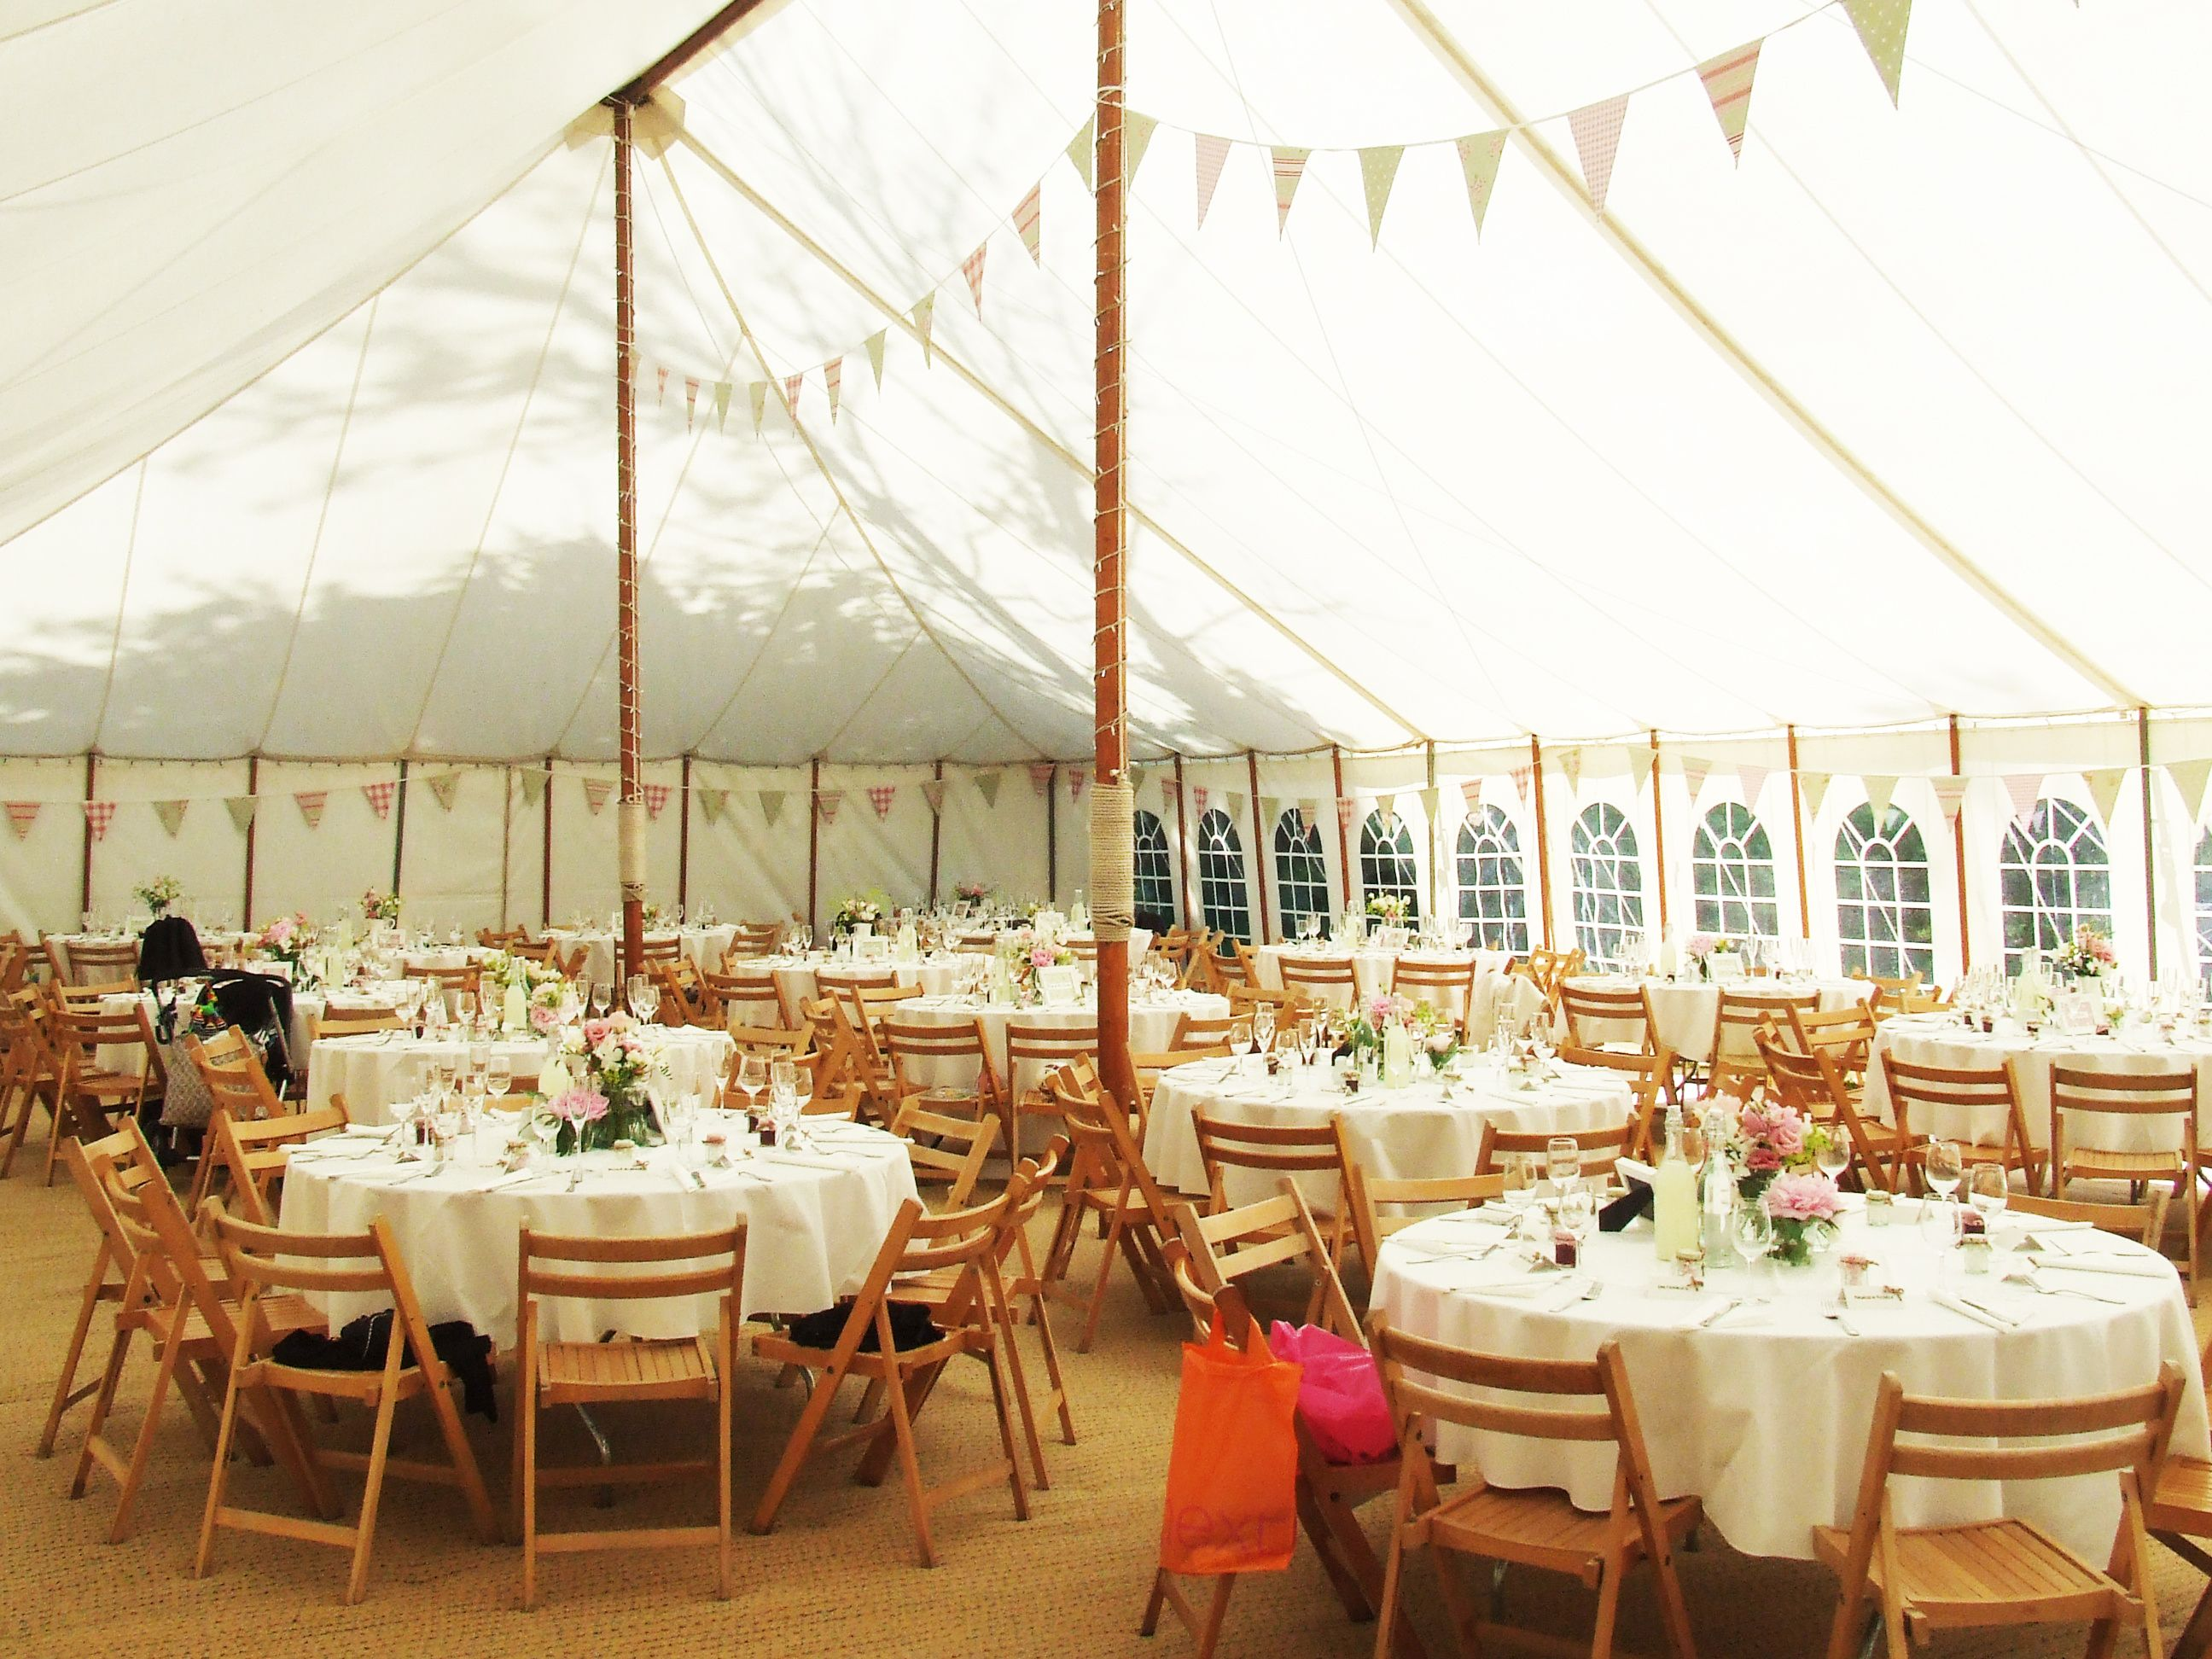 Unlined Marquee With Bunting Wooden Folding Chairs And Peonies Wedding ReceptionWedding